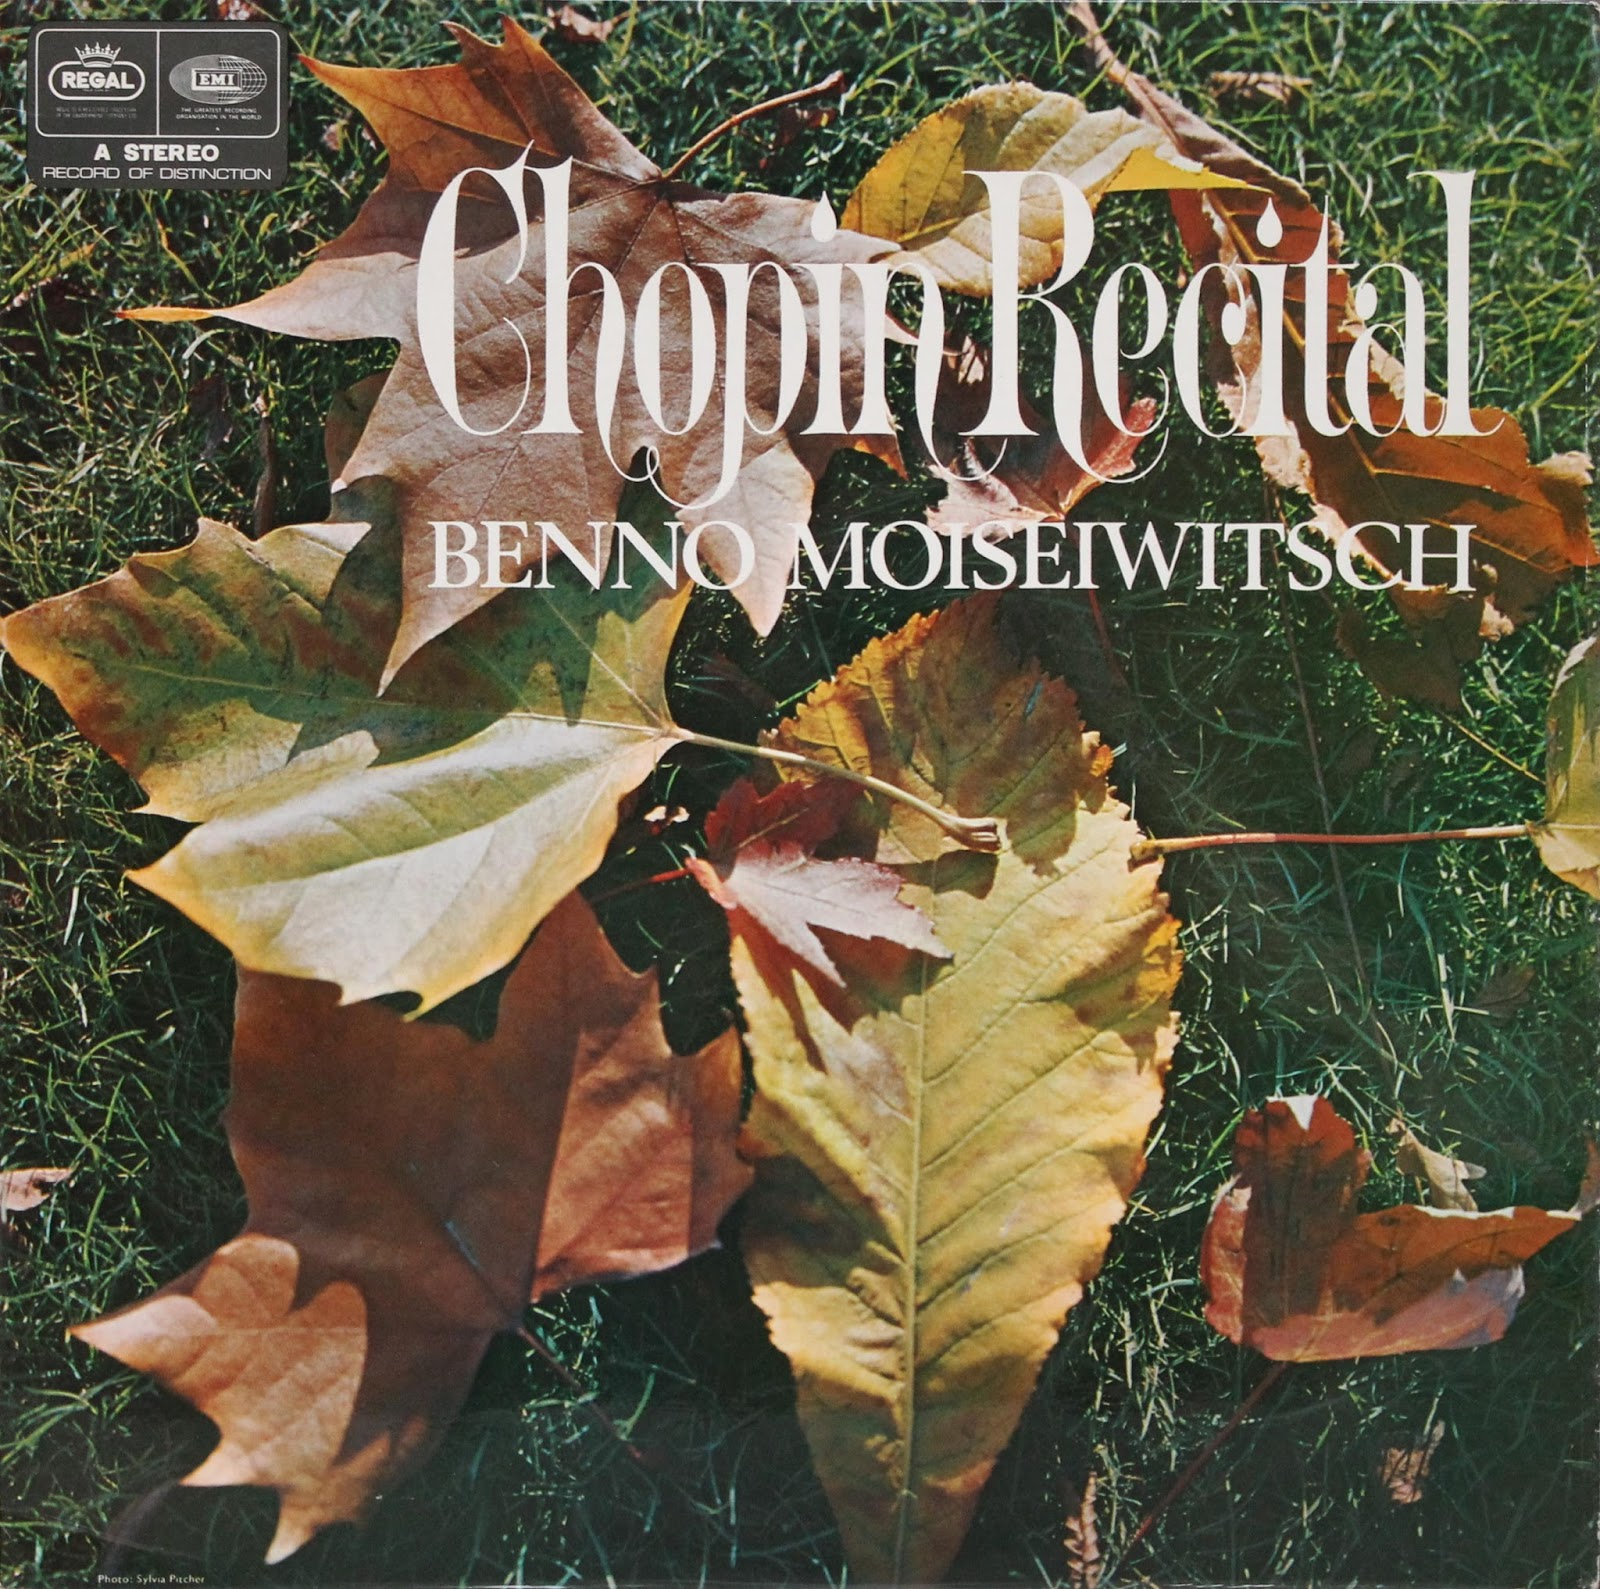 Benno Regal from to mozart the bargain bin a chopin recital by benno